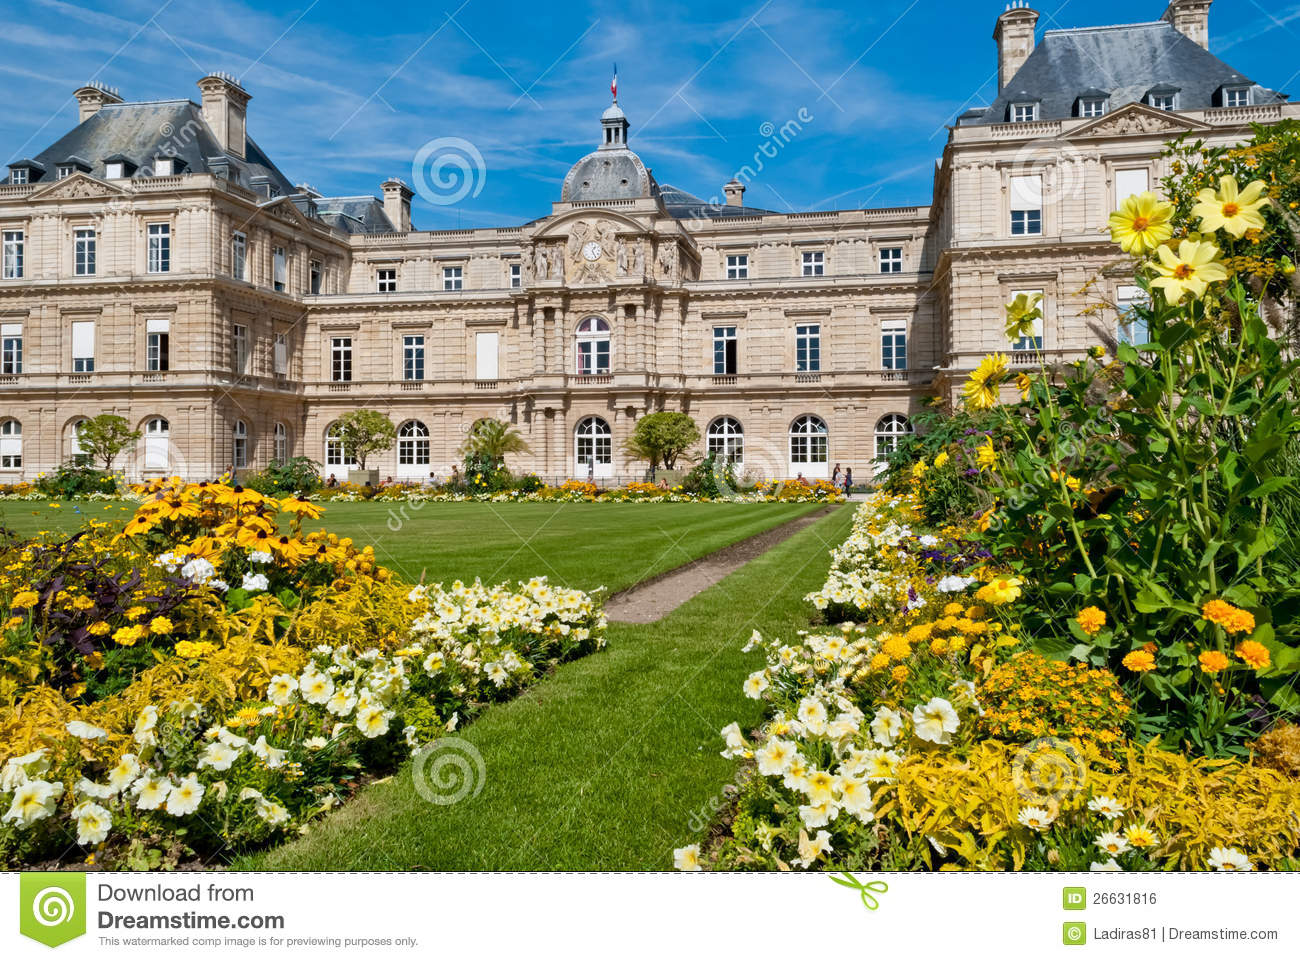 luxembourg palace and gardens paris royalty free stock image image 26631816. Black Bedroom Furniture Sets. Home Design Ideas